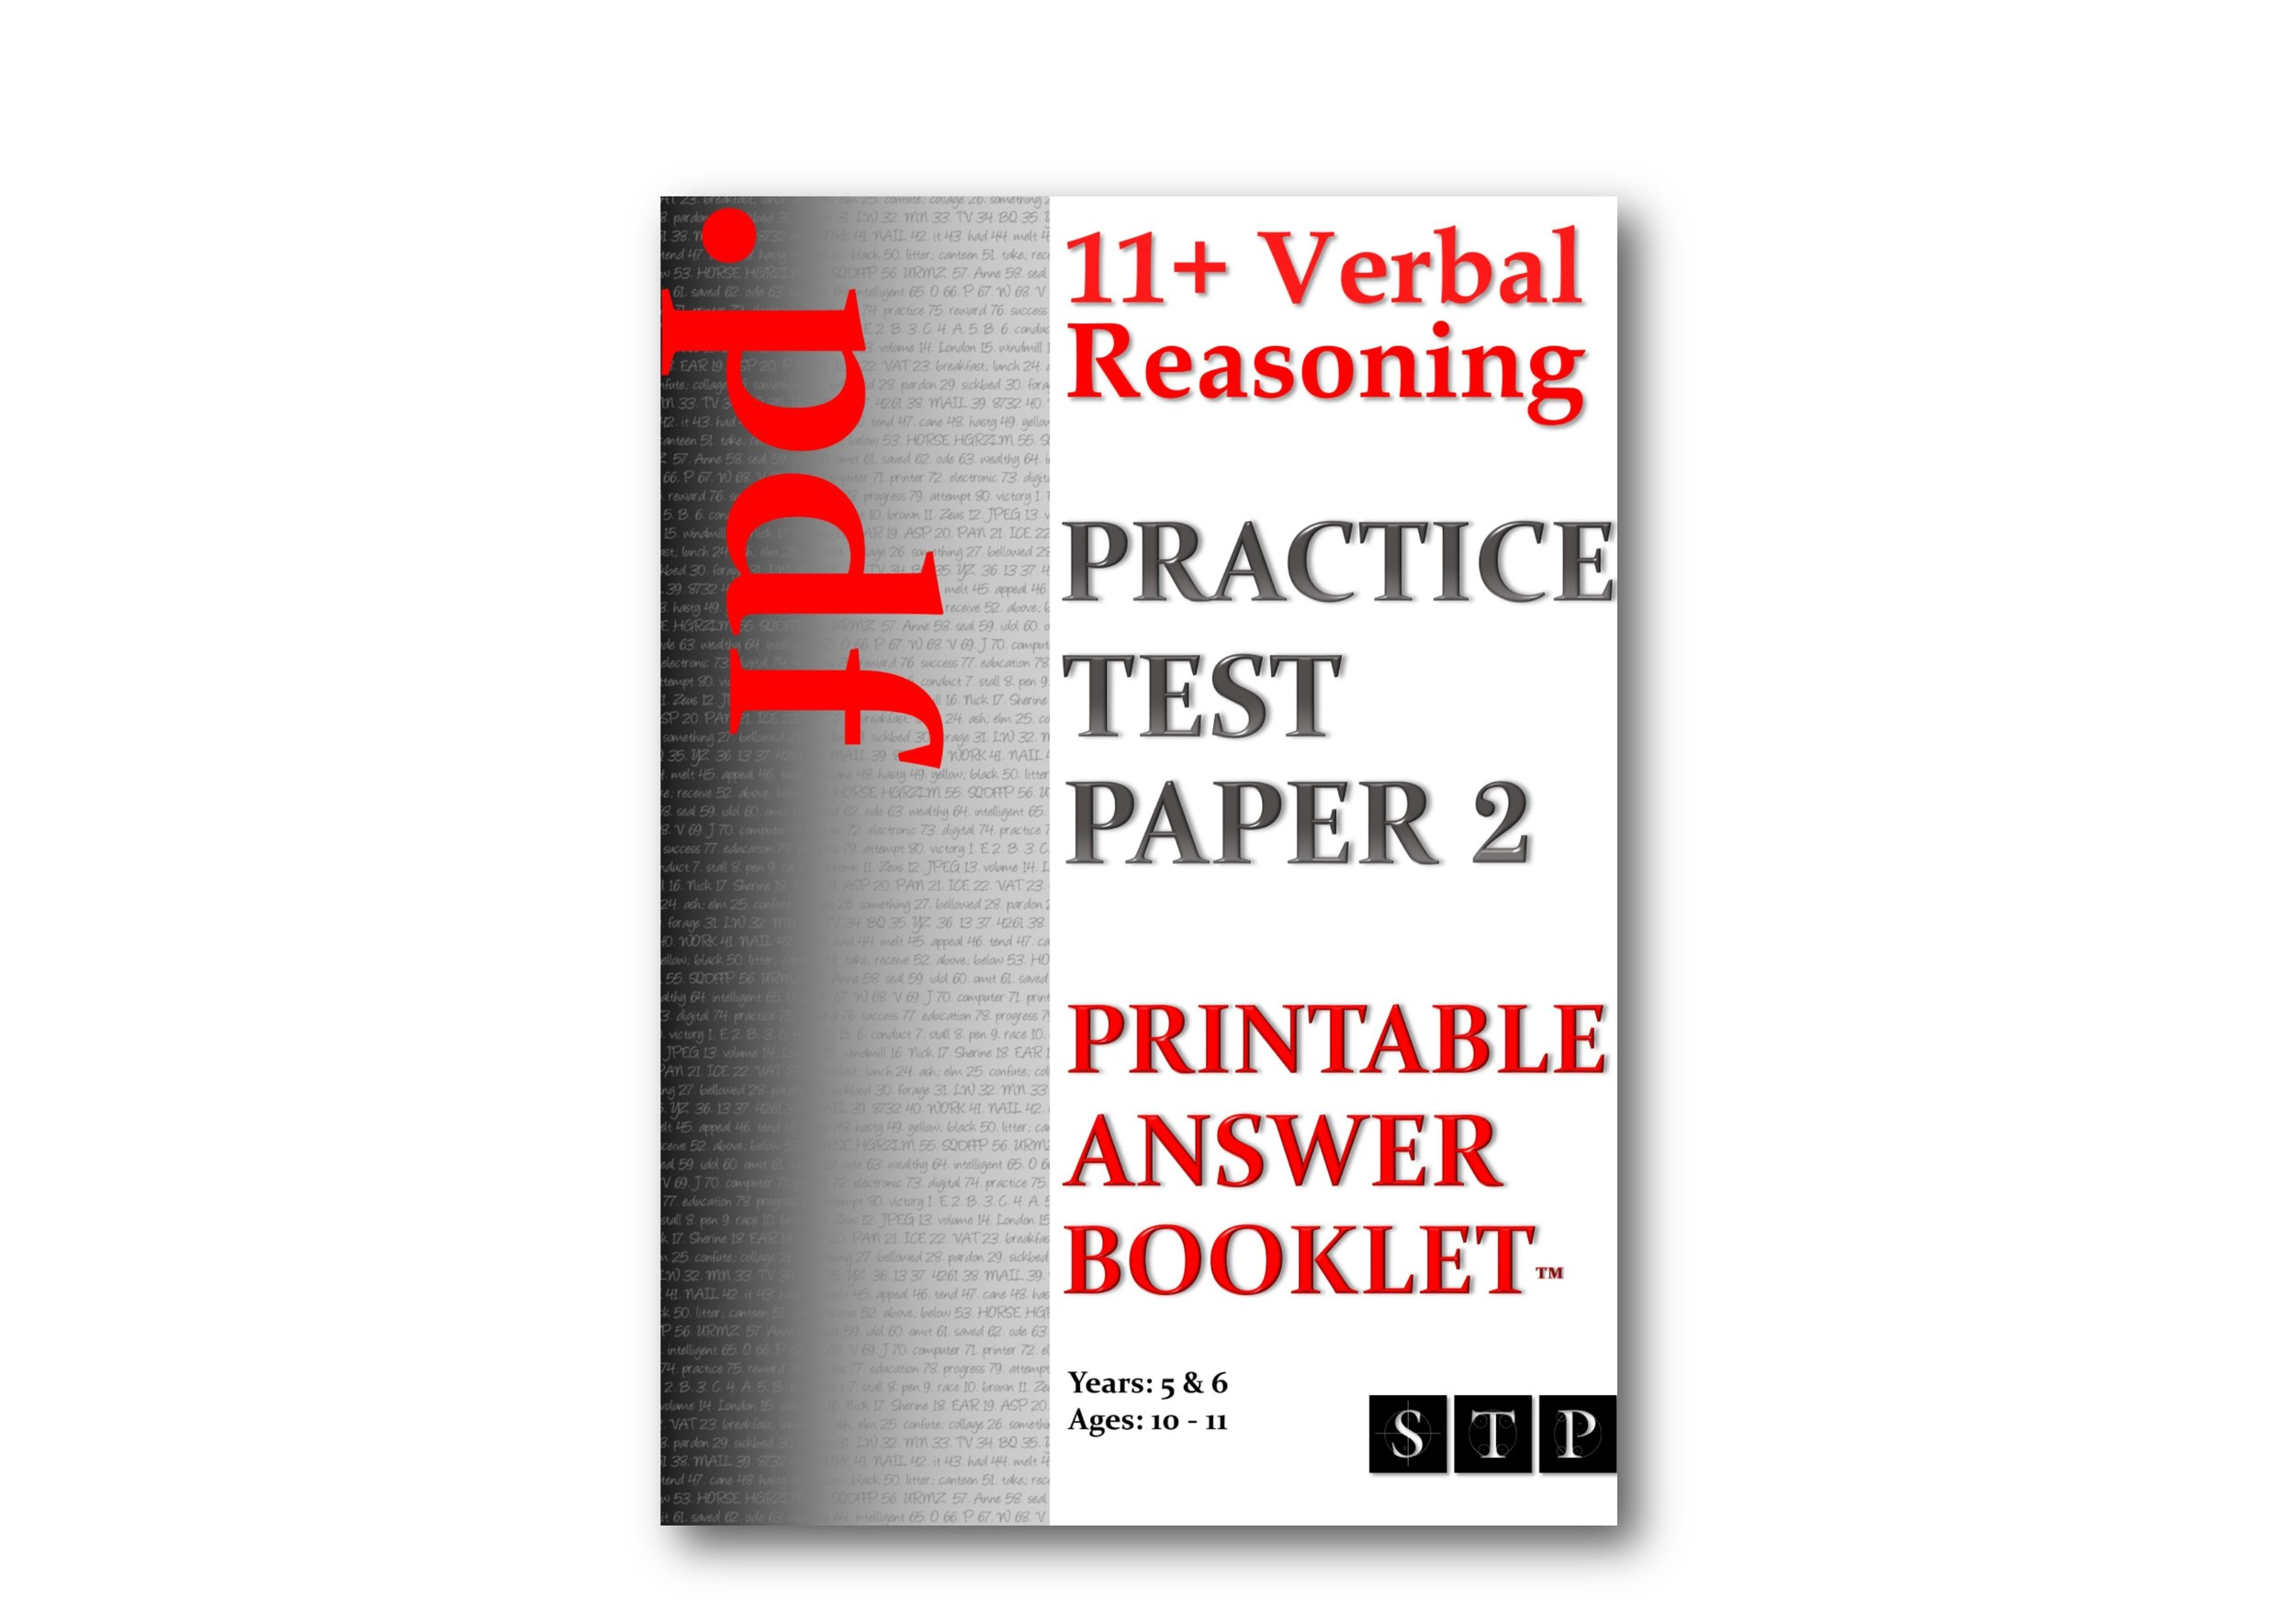 11+ Verbal Reasoning Practice Test Paper 2 (Printable Answer Booklet).jpg